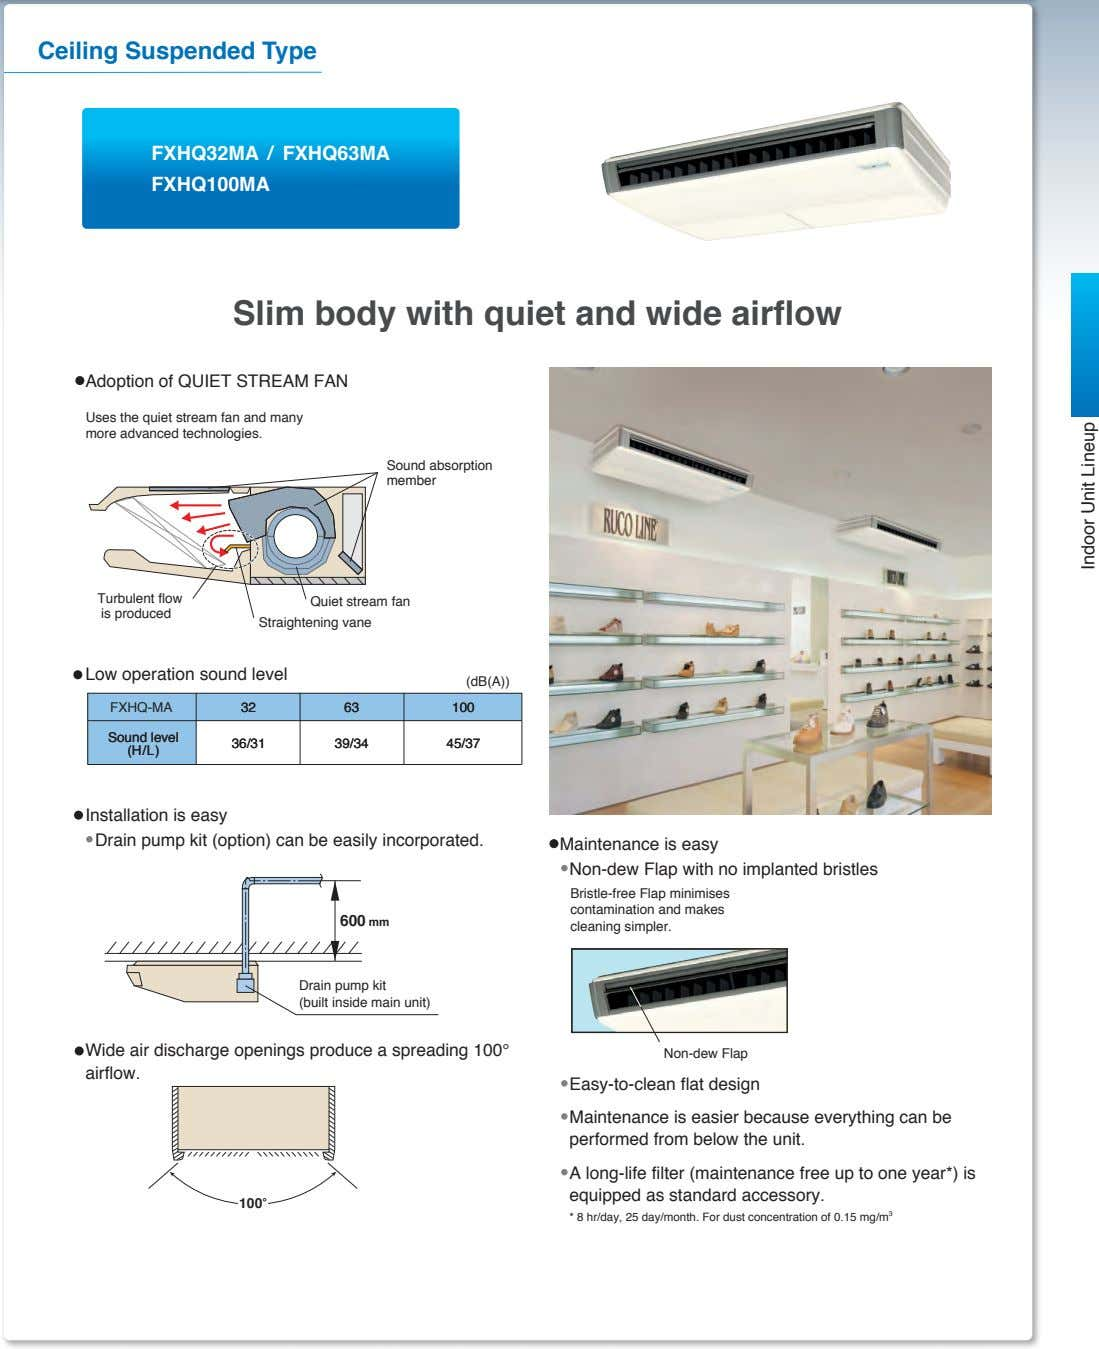 Ceiling Suspended Type FXHQ32MA / FXHQ63MA FXHQ100MA Slim body with quiet and wide airflow Adoption